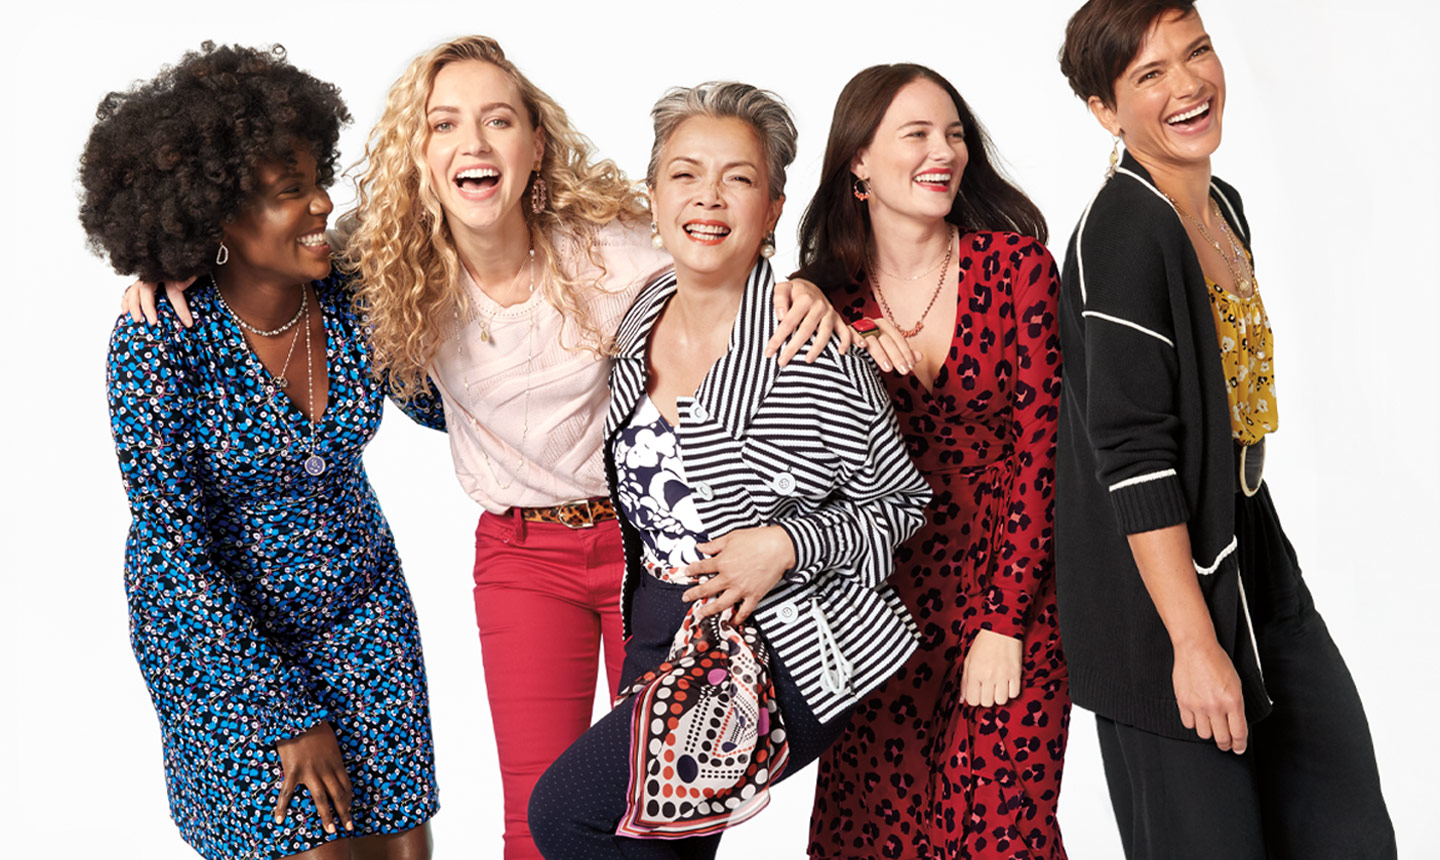 Cabi Fall 2020.Spring 2020 Collection Here We Come Cabi Fall 2019